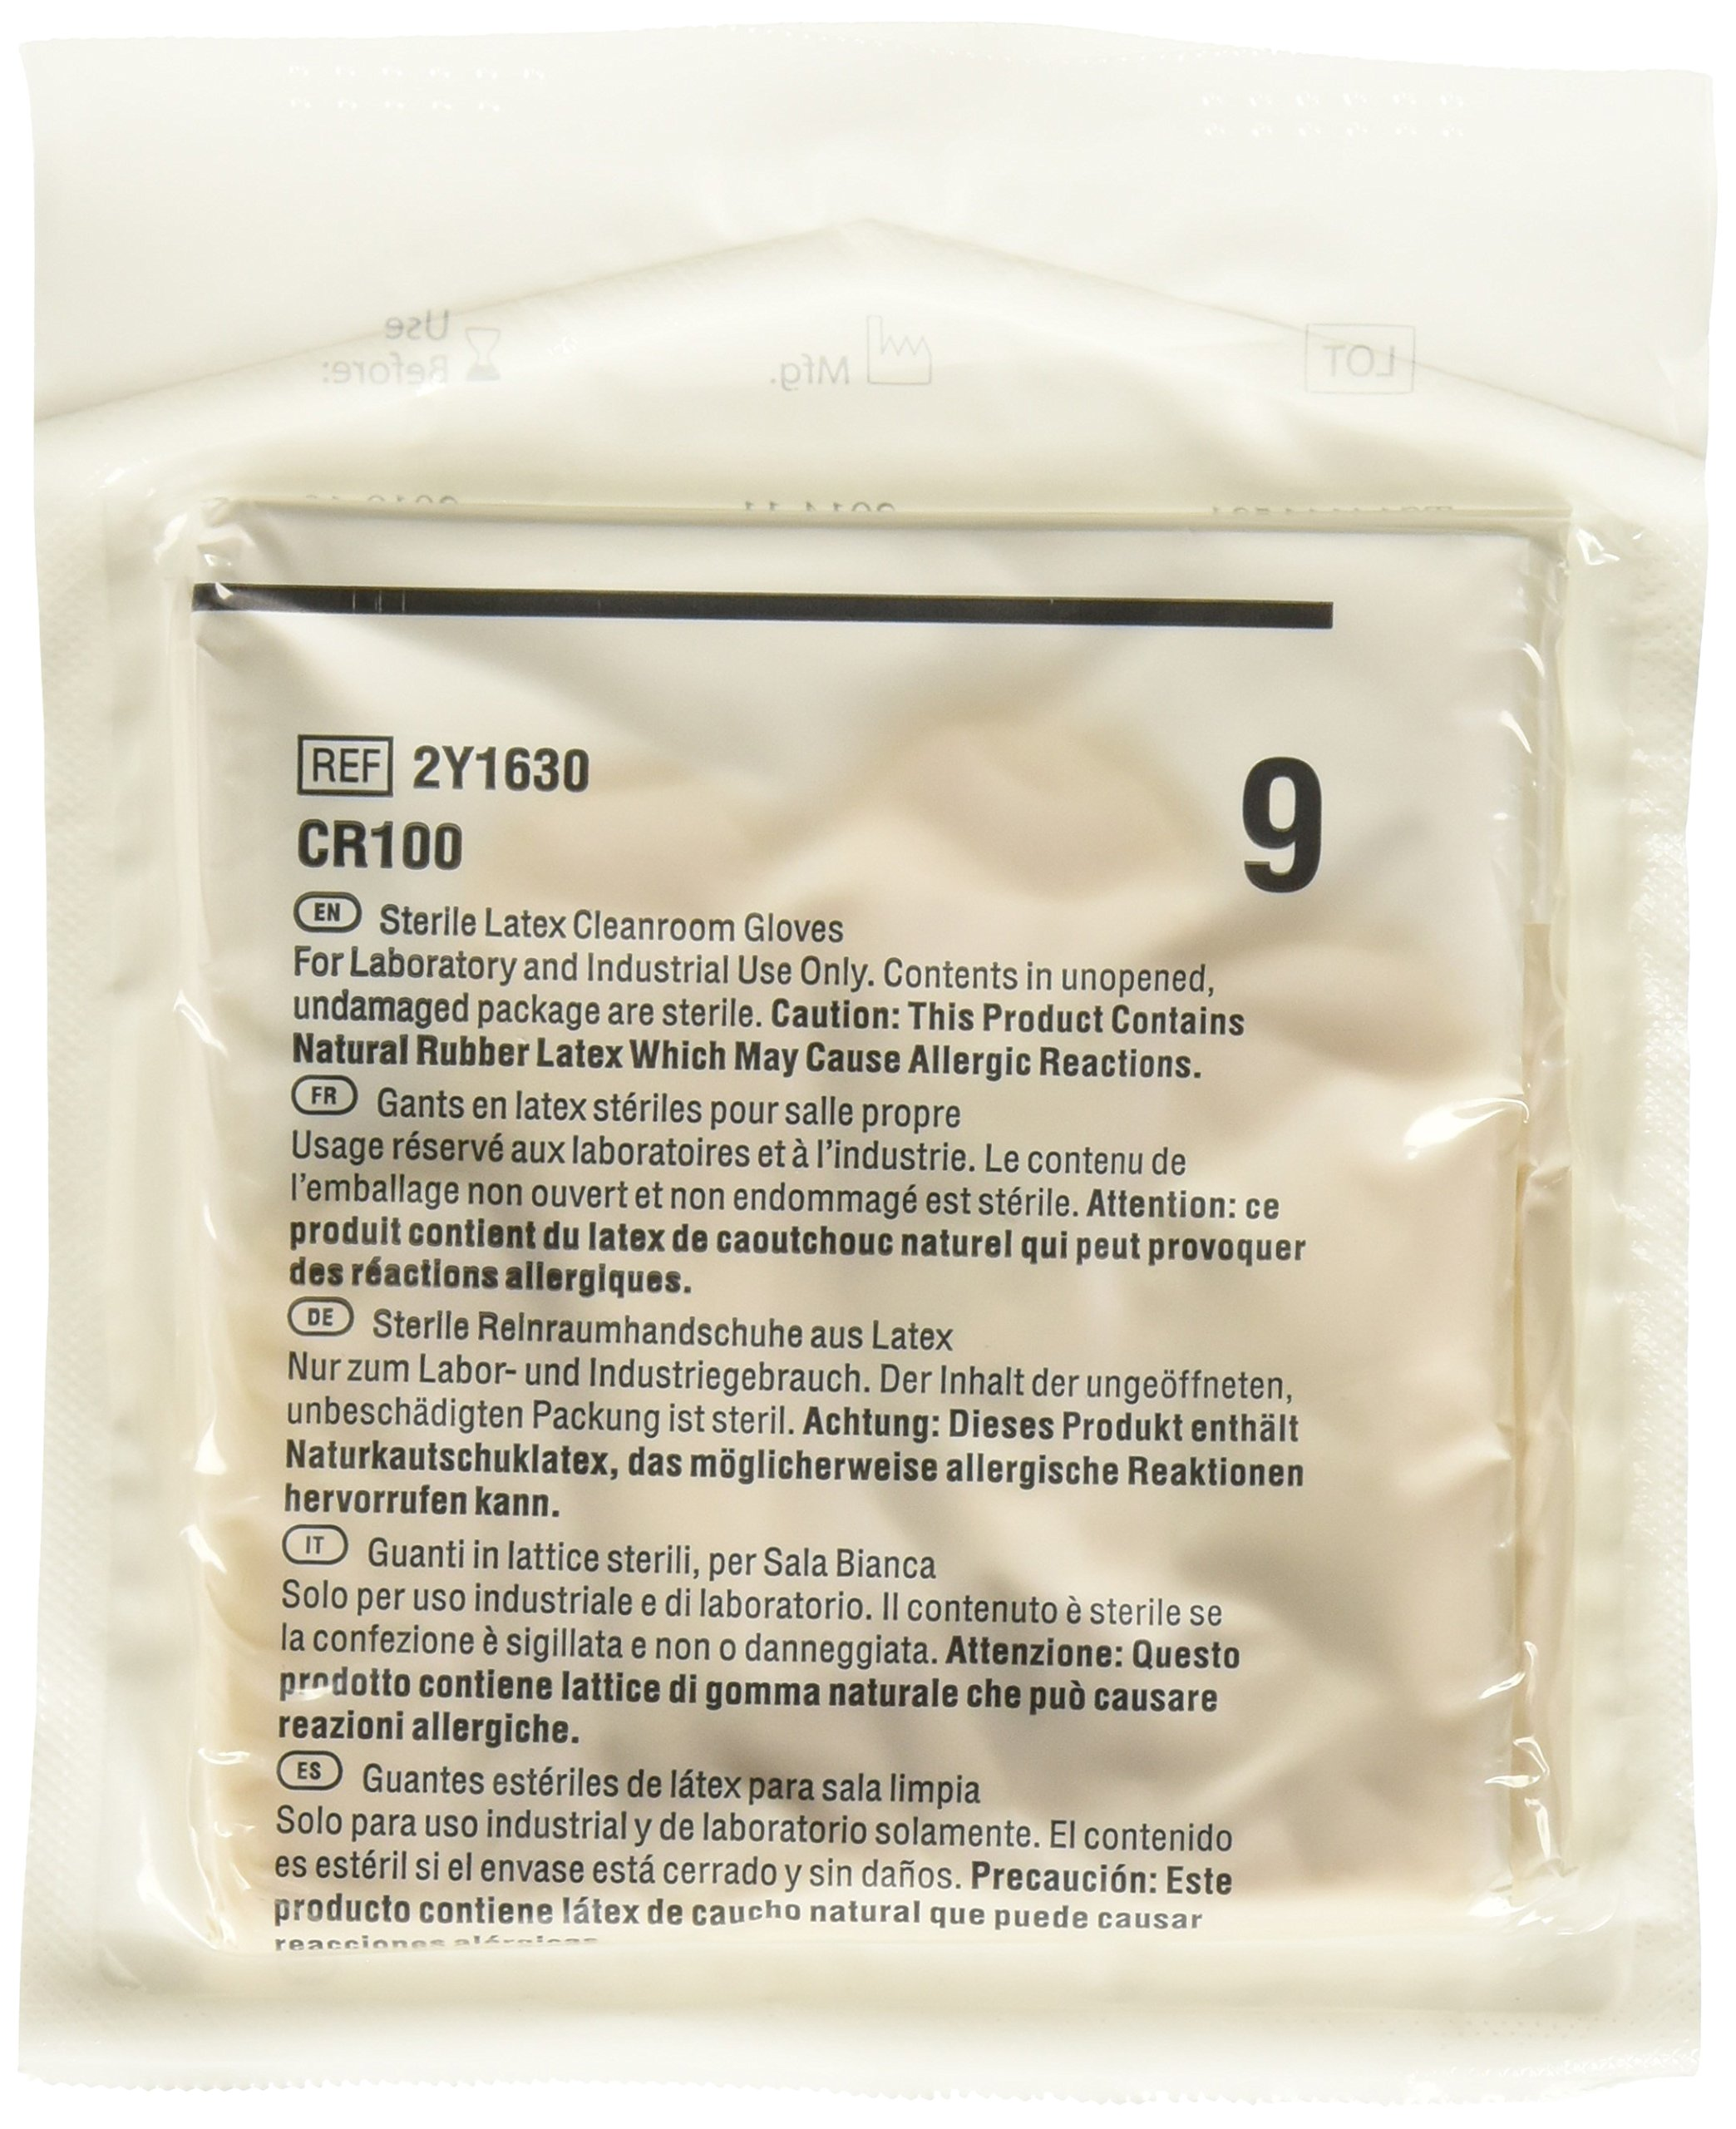 Cardinal Health 2Y1630 CR100 Latex Sterile Critical Environment Cleanroom Gloves, Size 9 (Case of 100)